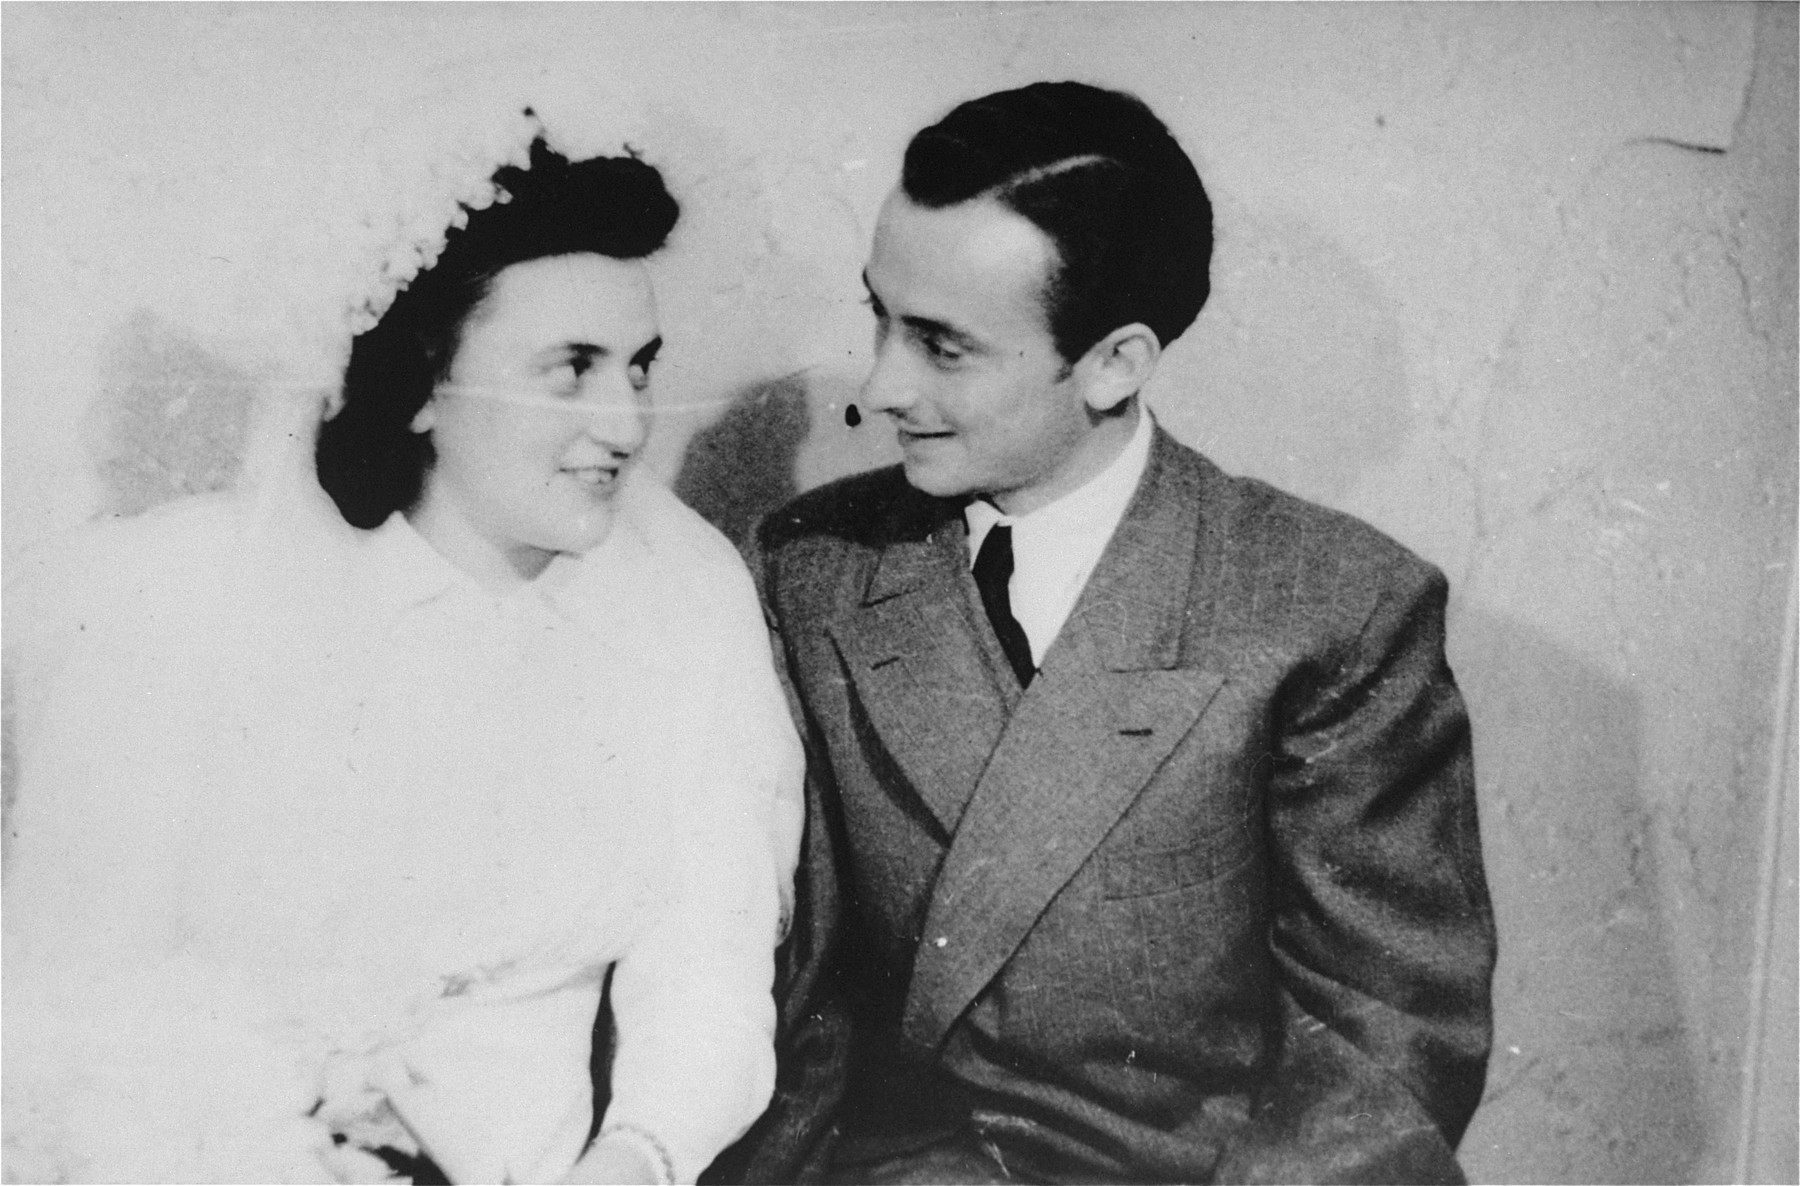 Wedding portrait of Henry and Esther Brauner in the Stuttgart displaced persons camp.